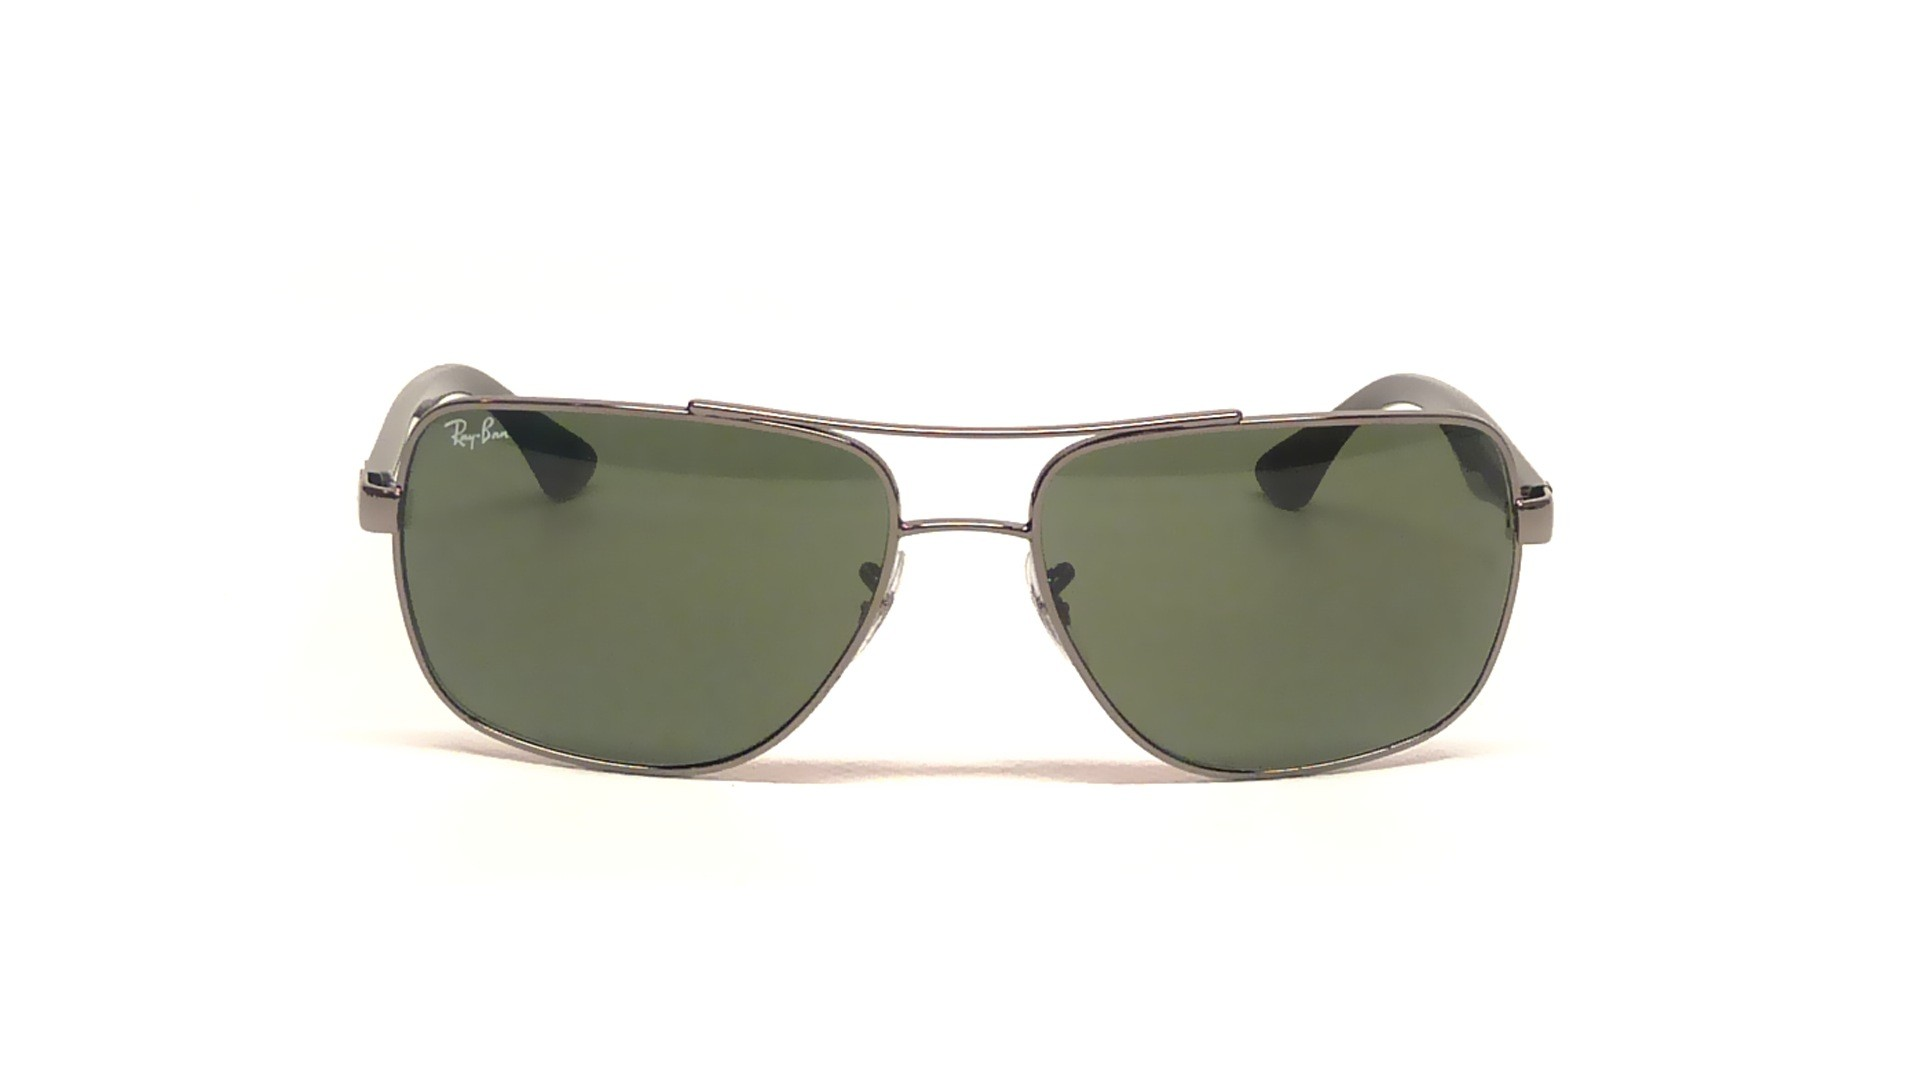 rb3483  Ban RB3483 004/58 60-16 Black Polarized